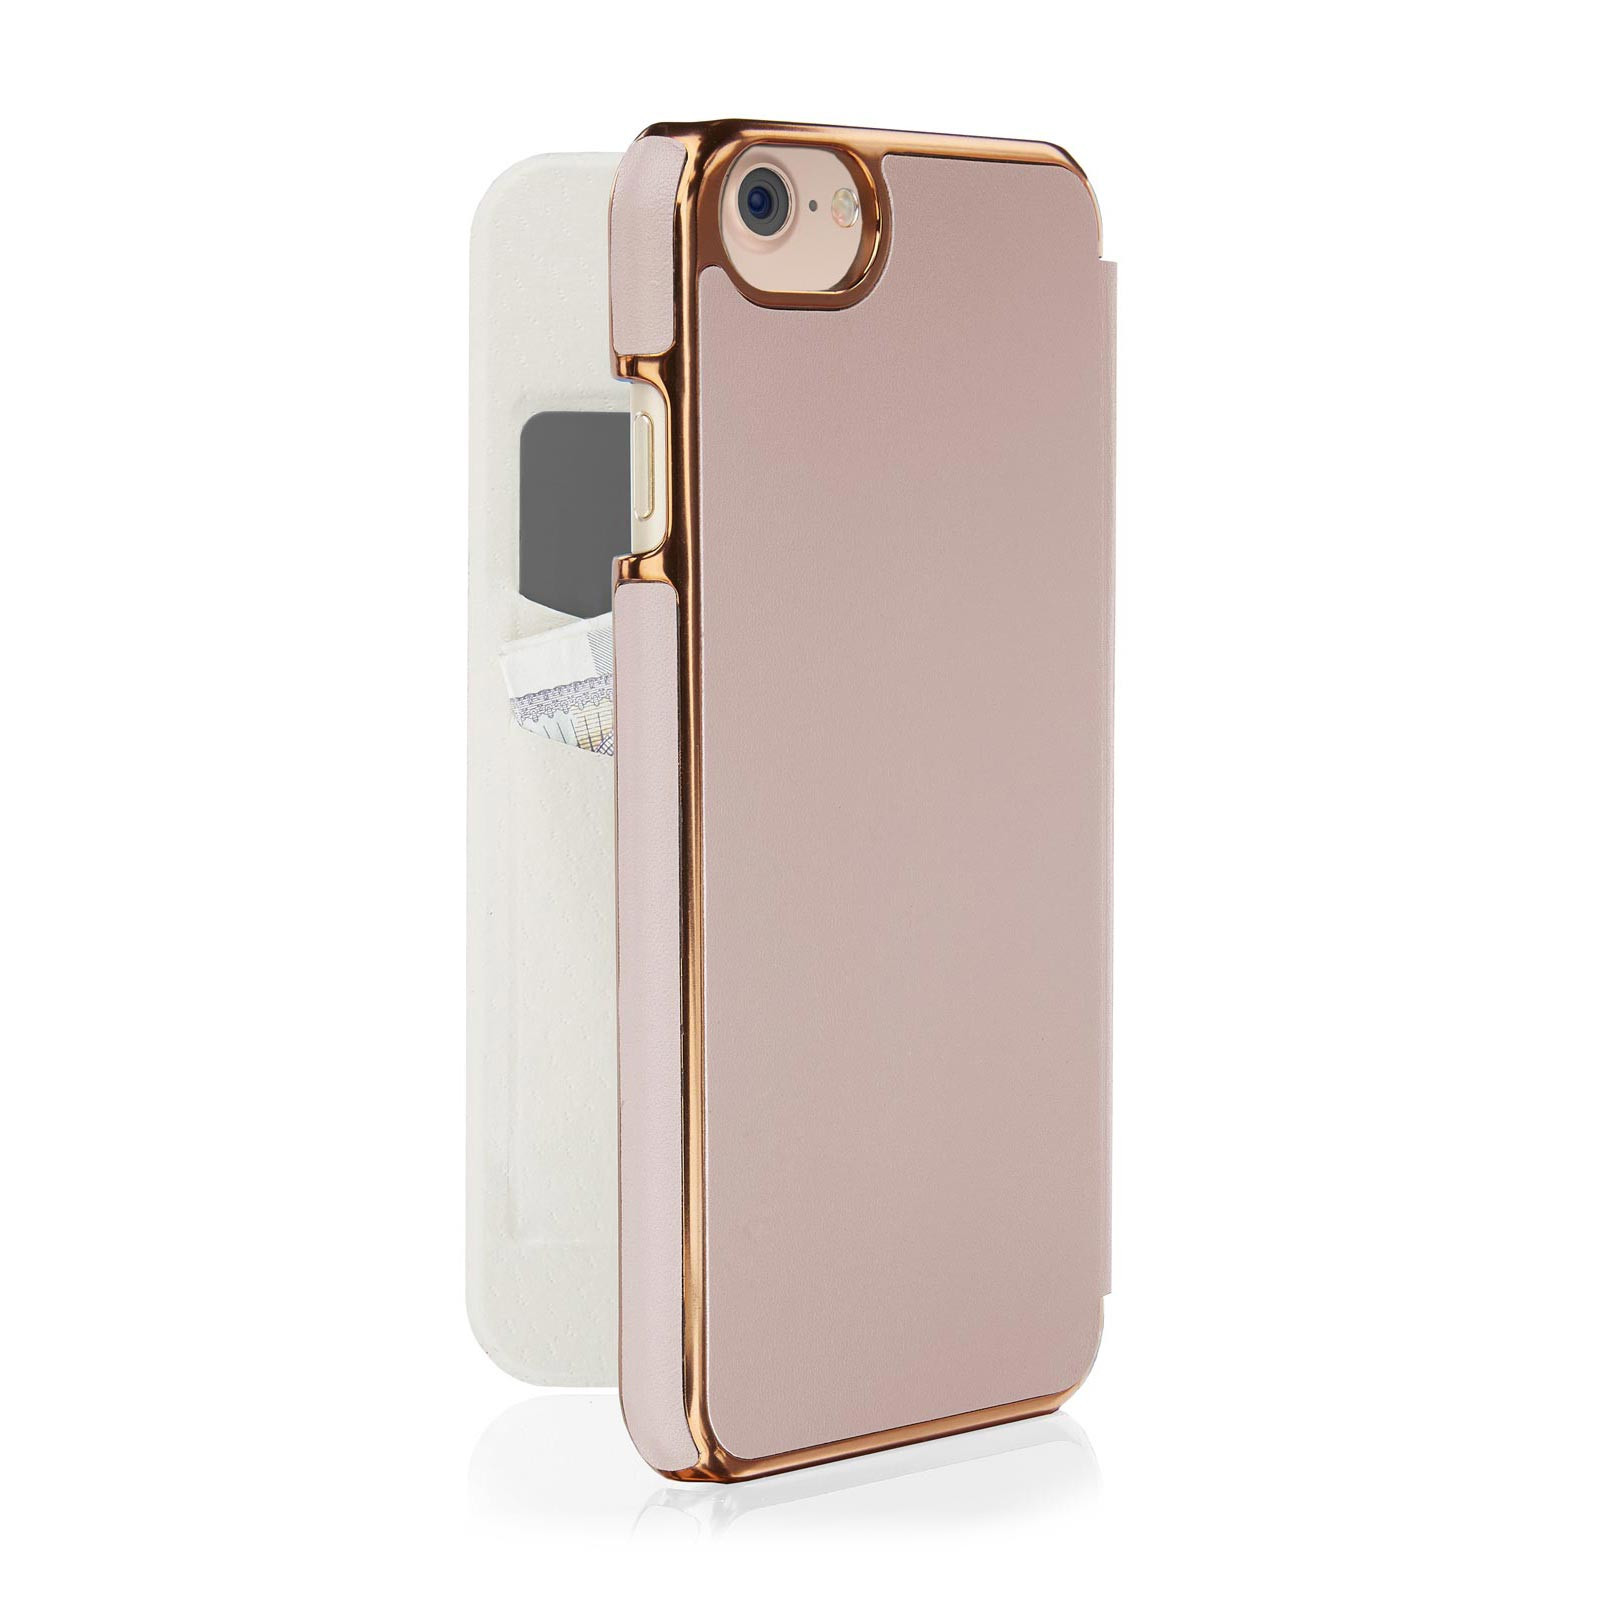 best service 7e4a9 94d73 iPhone 8 Slim Wallet Case - Dusty Pink (Also Fits iPhone 6/6S/7)